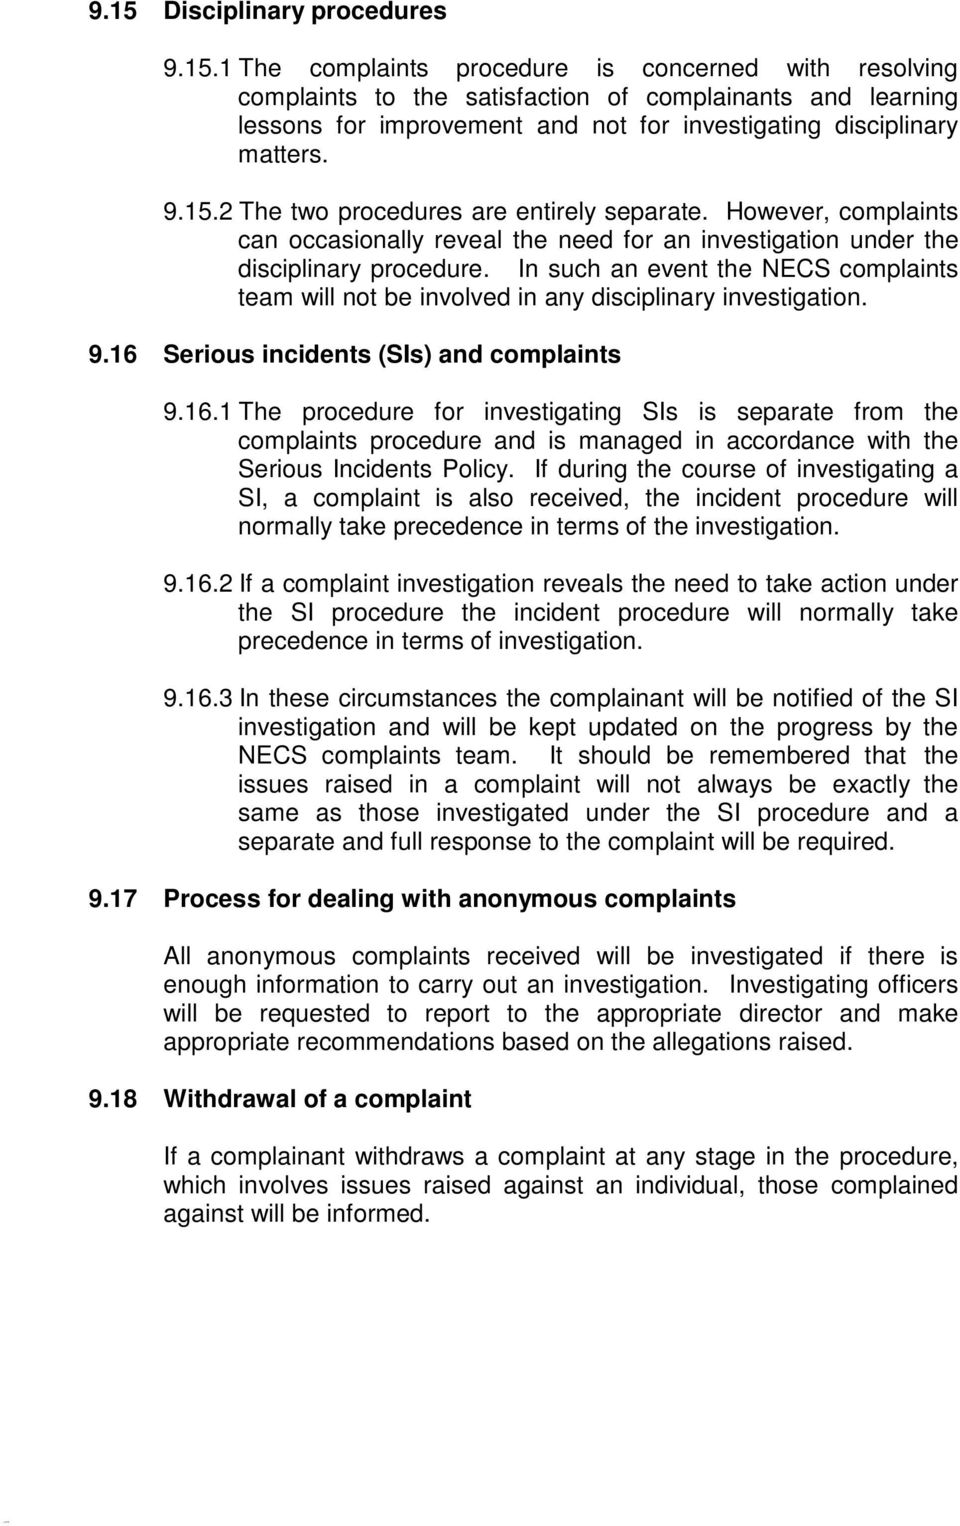 In such an event the NECS complaints team will not be involved in any disciplinary investigation. 9.16